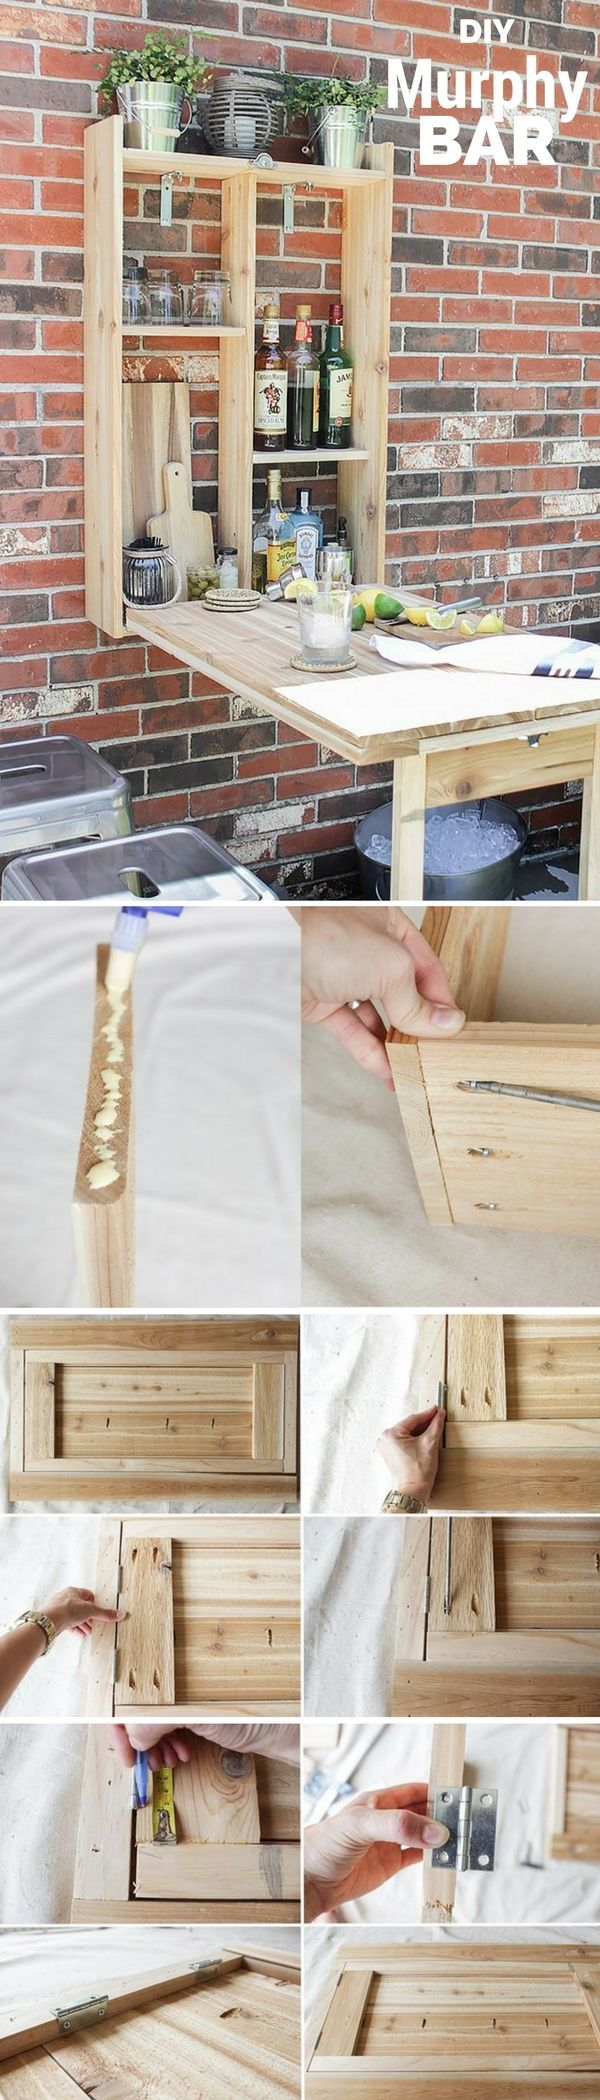 Schauen Sie sich das Tutorial an: #DIY Murphy Bar DIY Home Decor Ideas @ ISD